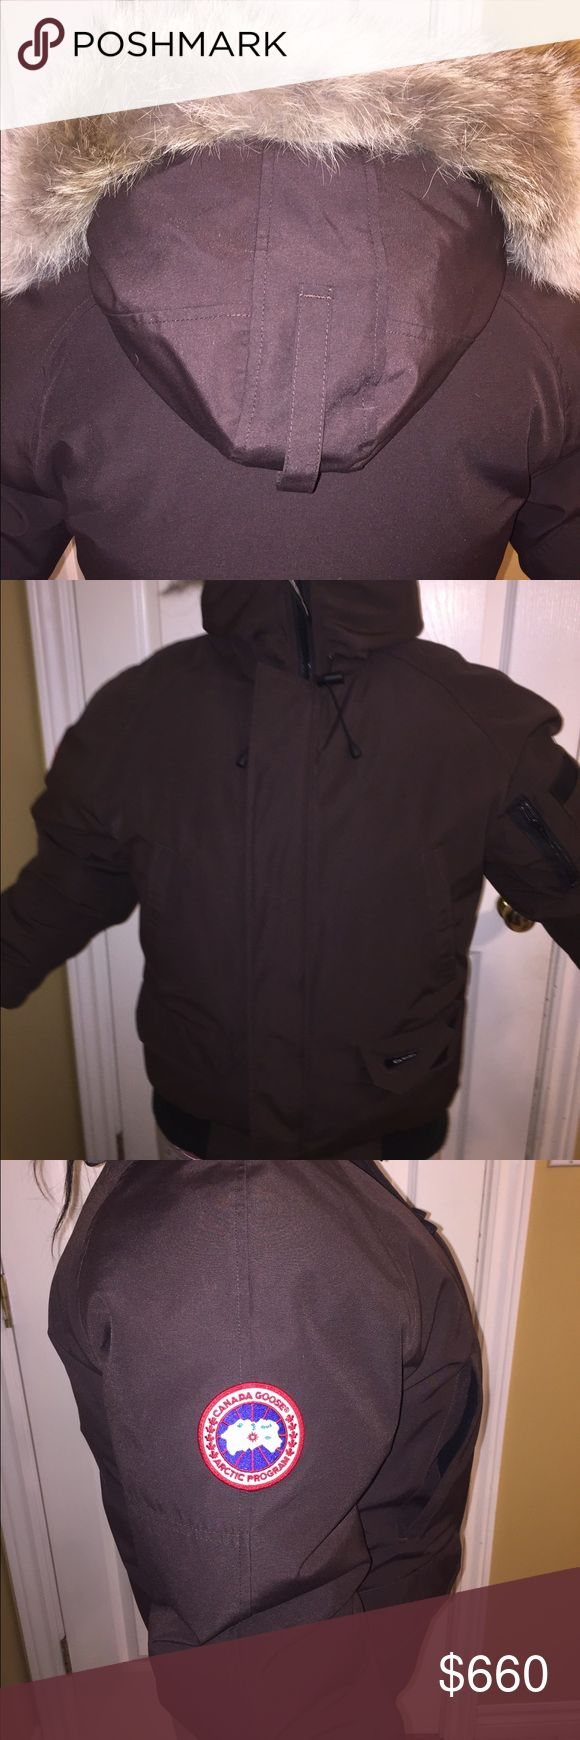 AUTHENTIC CANADA GOODE JACKET. ONLY USED ONCE. I bought it in Montreal for my brother's birthday, he ended up going to the south for school. So now it's been sitting in my closet ever sense. It's in perfect condition. Canada Goose Jackets & Coats